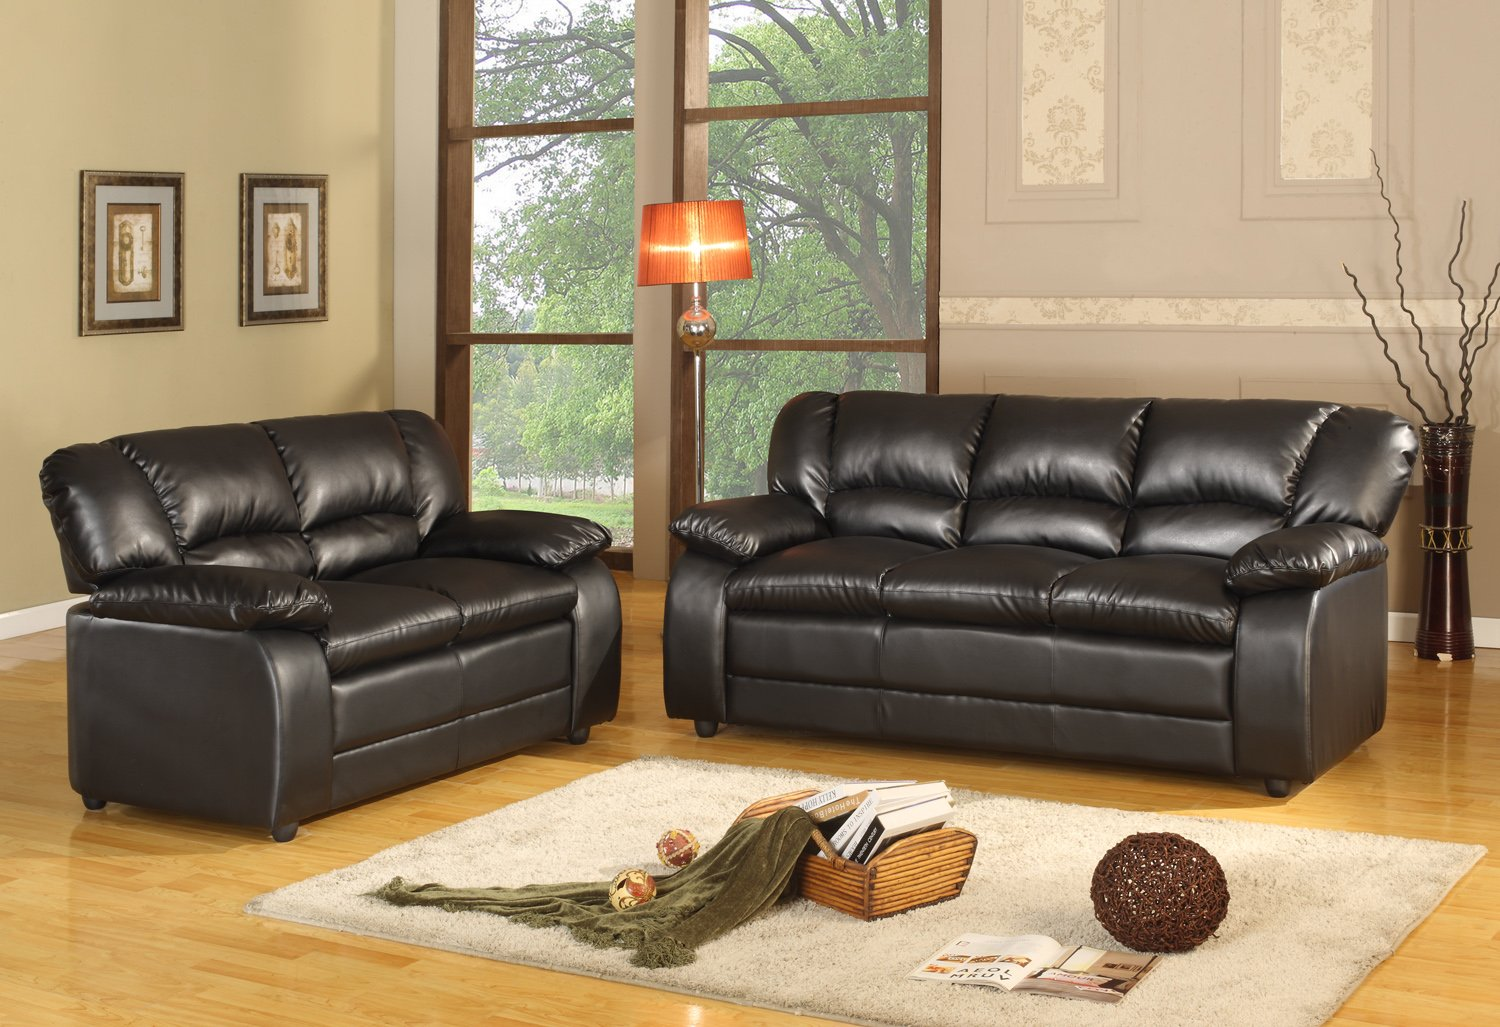 brand sky black leather sofa love seat living room set new ebay